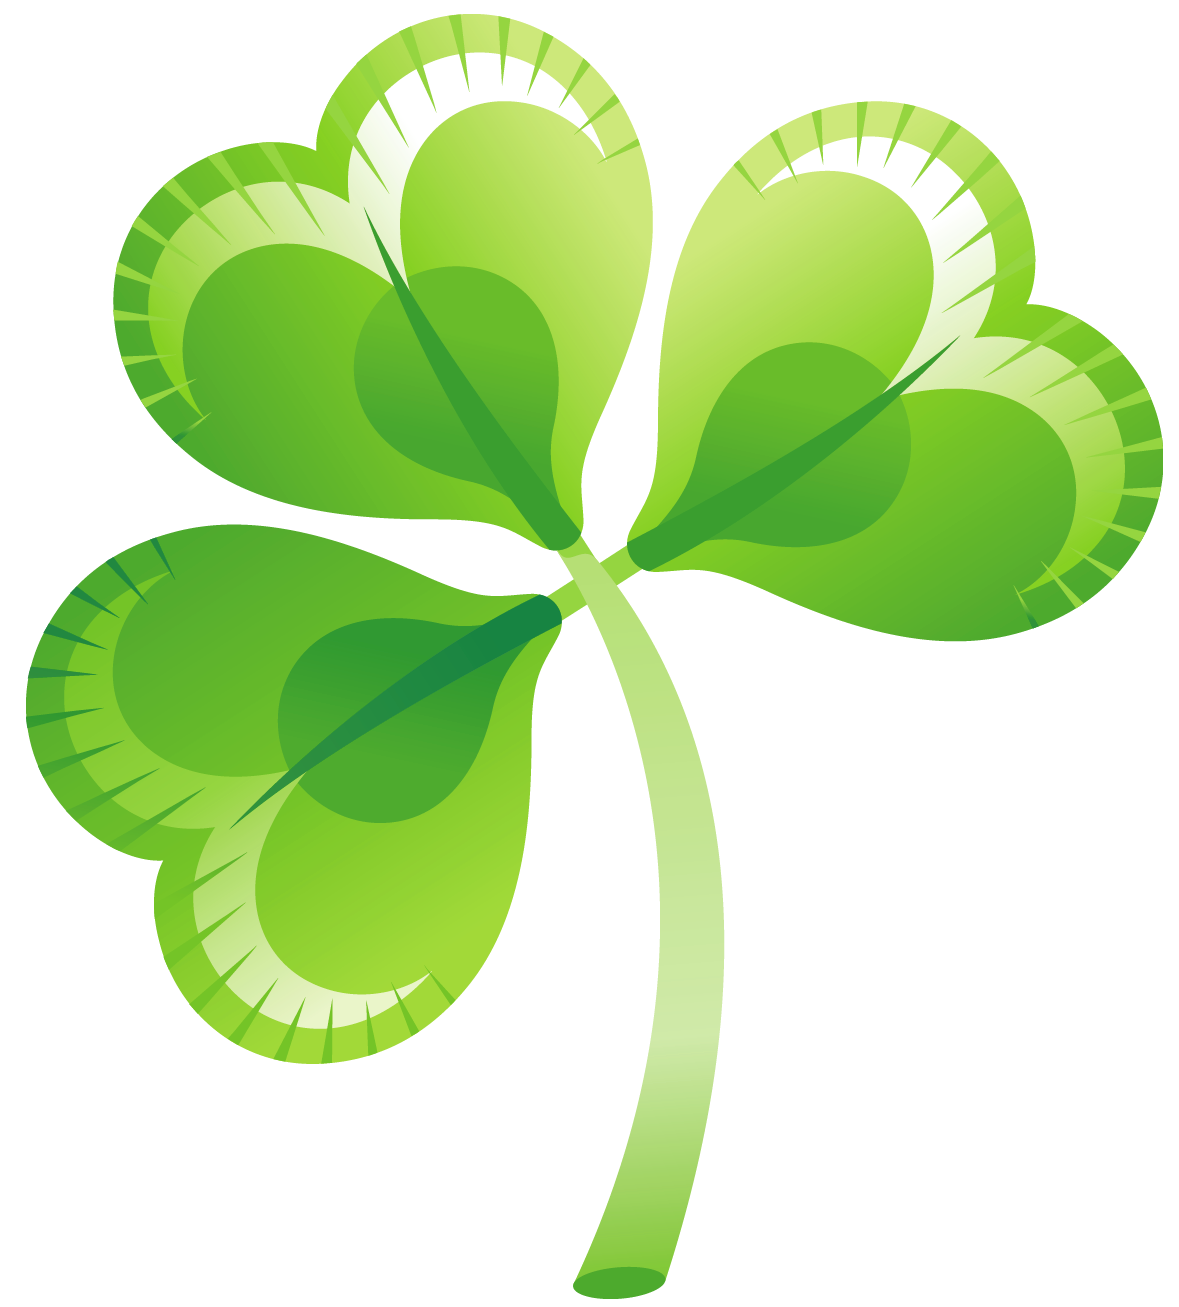 Free Shamrock Png No Background - St Patrick Shamrock PNG Picture   Gallery Yopriceville - High ...